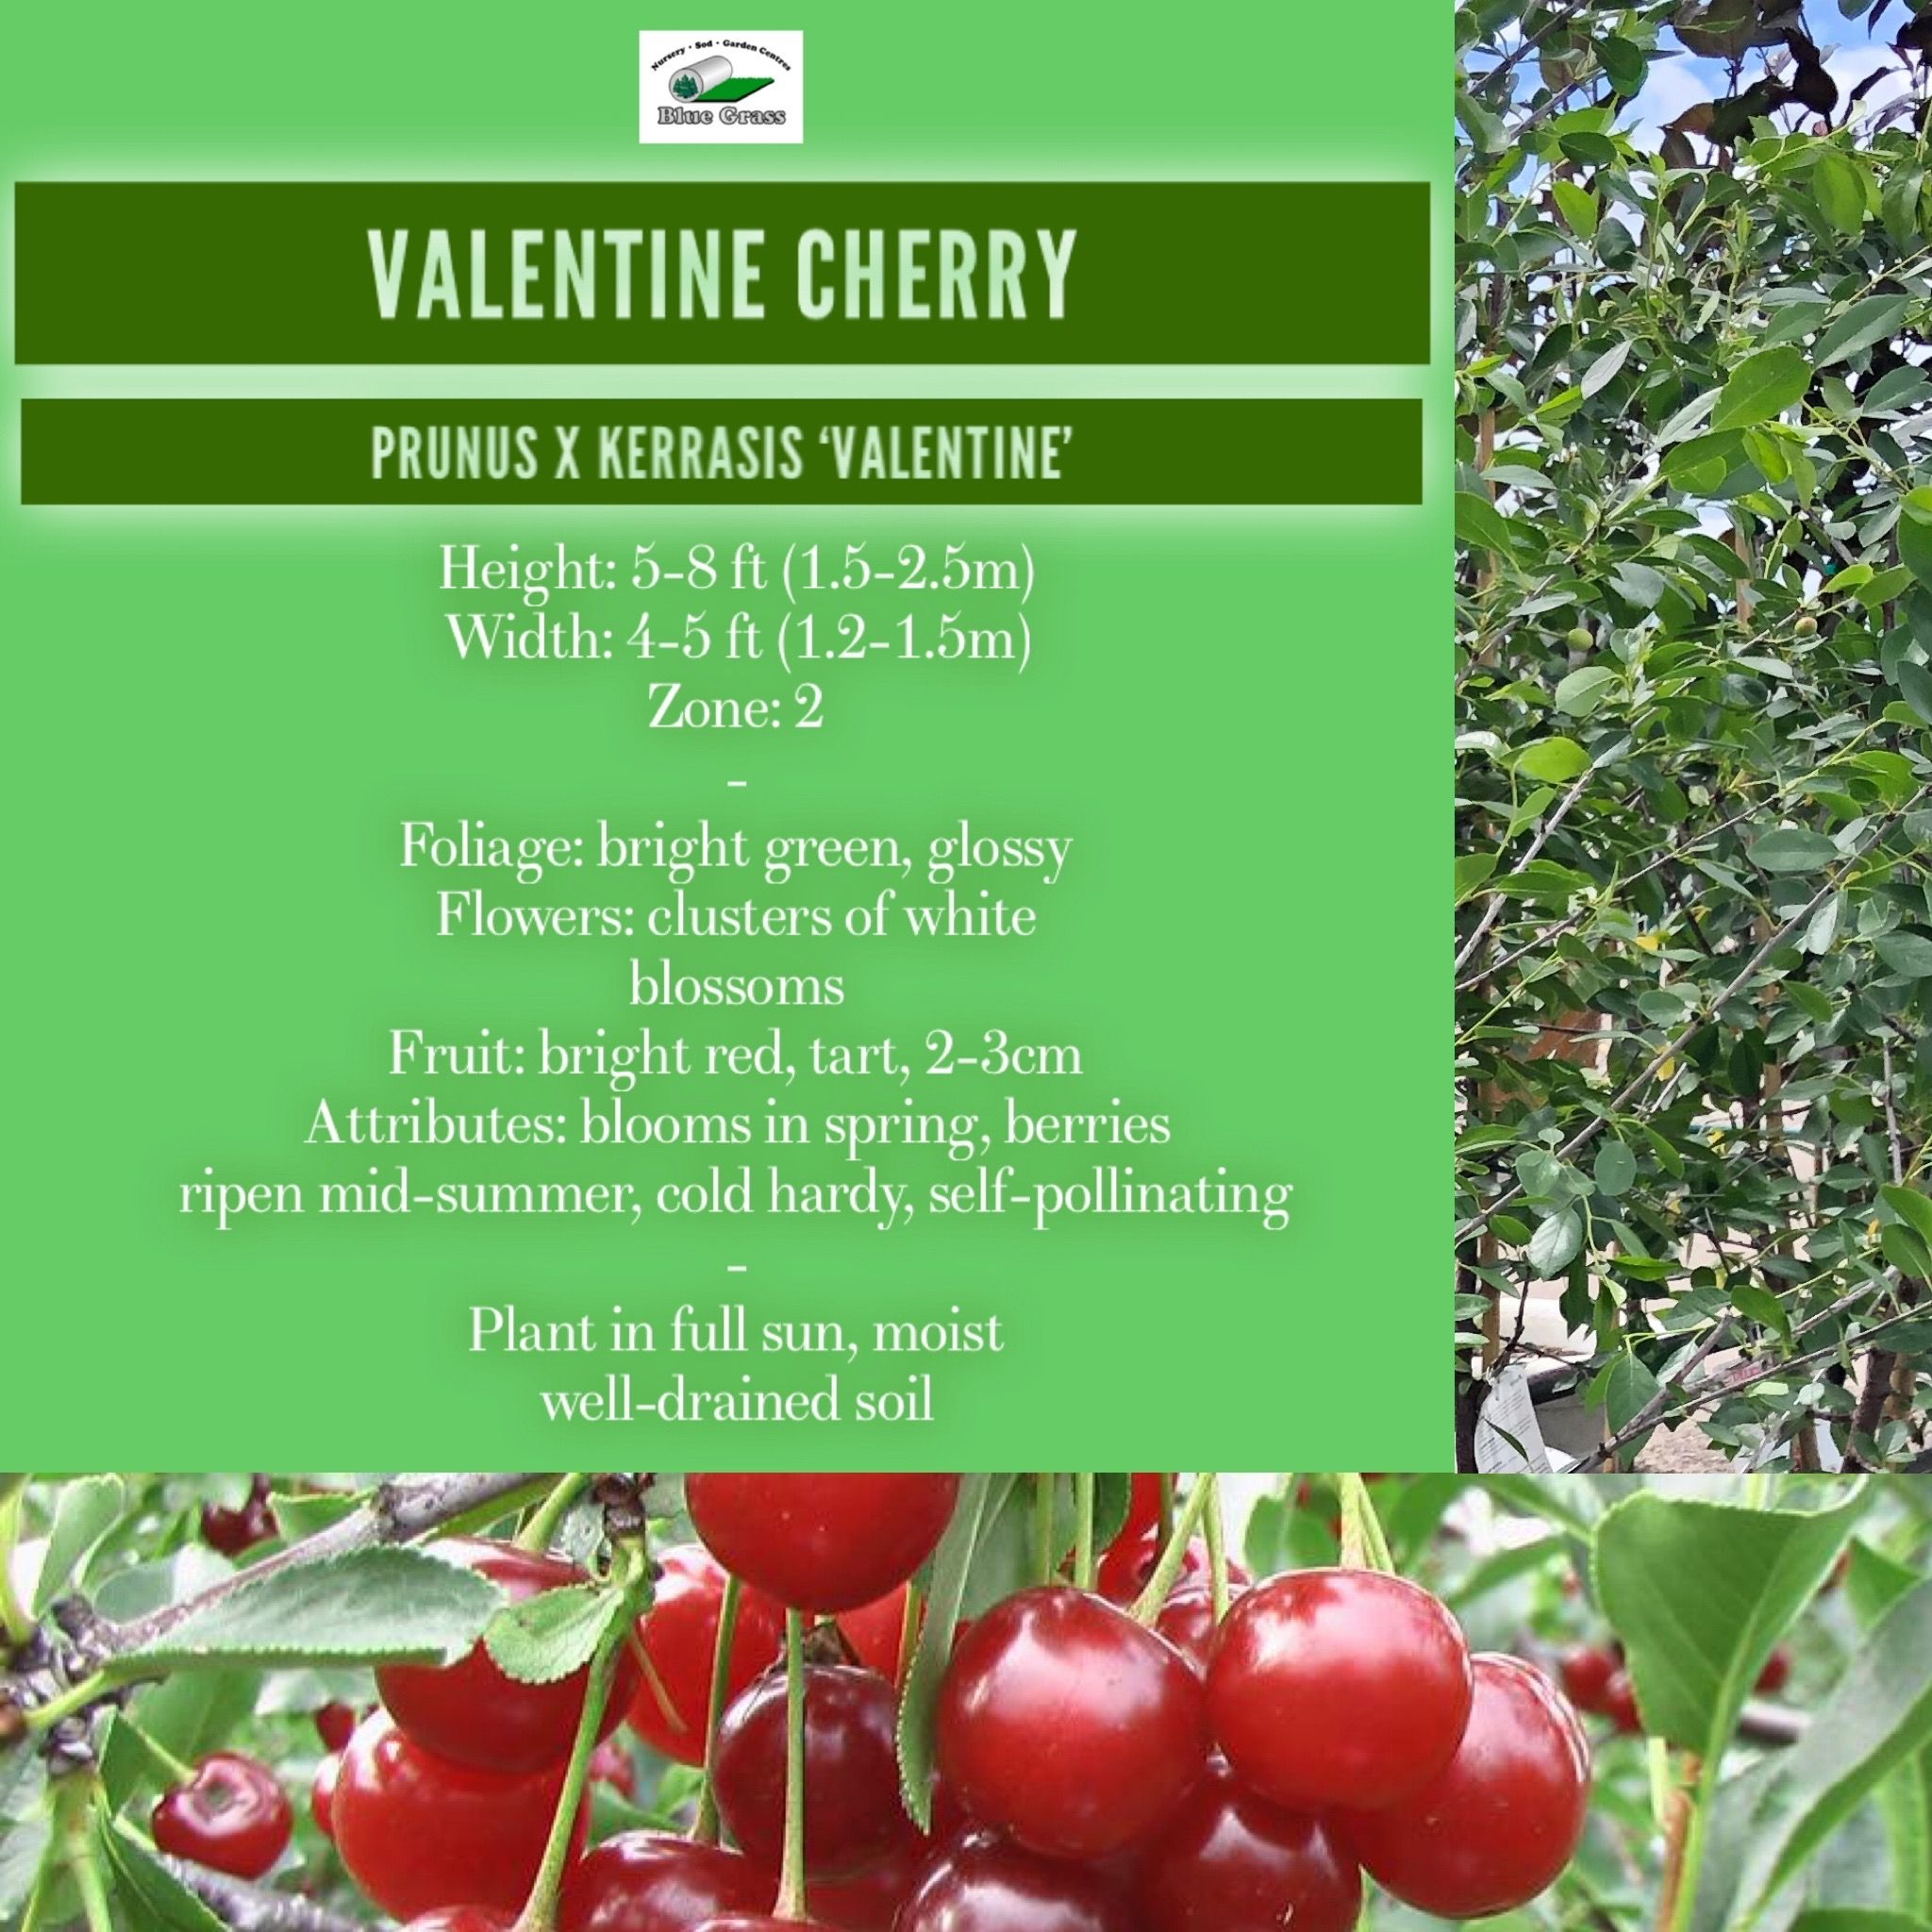 Pin By Bluegrasscgy On Grow With Blue Grass Valentines Cherries Prunus Bright Green